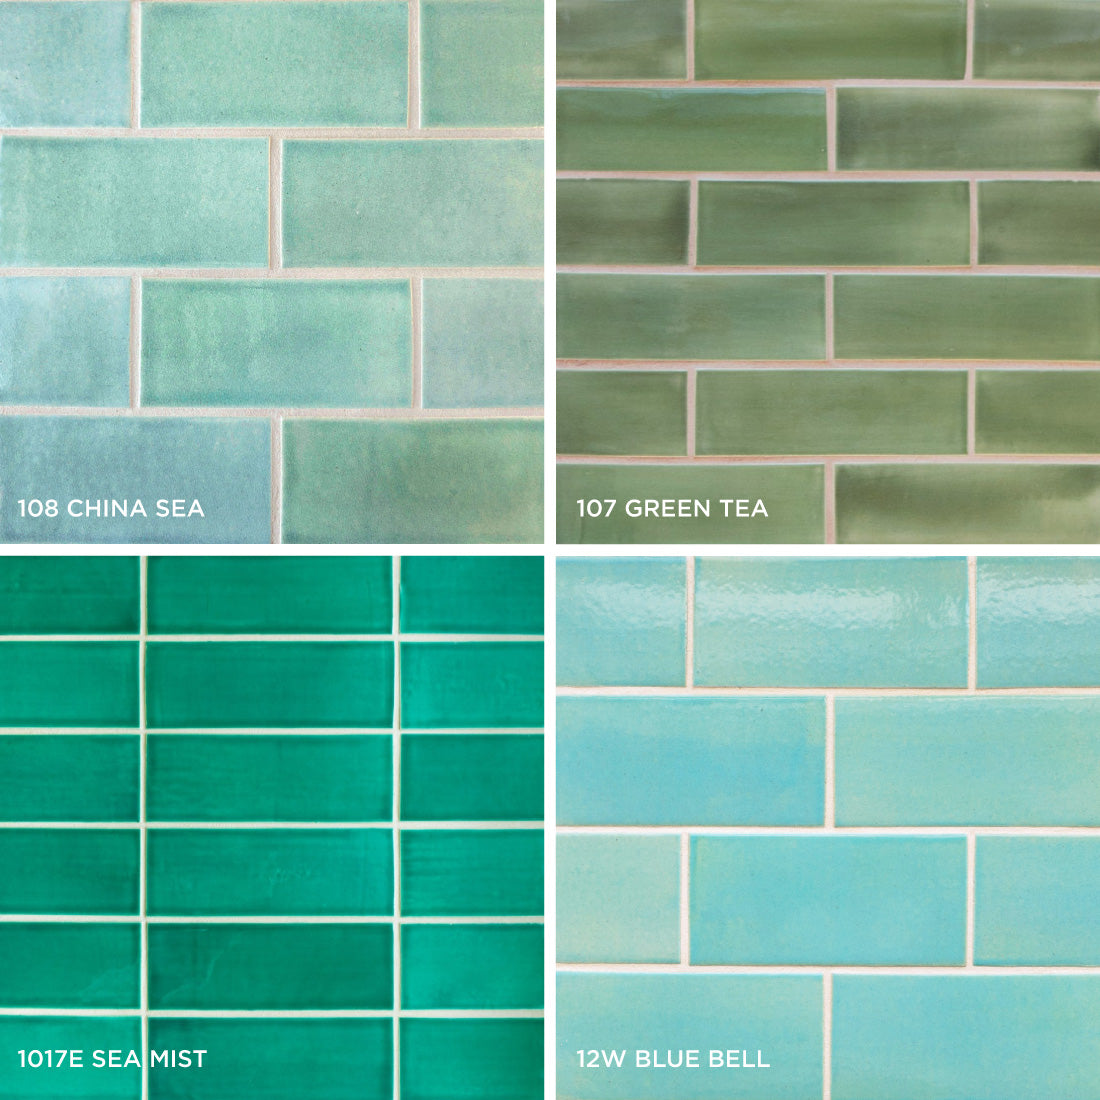 Header-110816 How to Choose the Perfect Subway Tile Color and Pattern All Bathrooms Kitchens Tile Education Tile Inspiration   Larsen-Peterson-Bathroom-Medium-1 How to Choose the Perfect Subway Tile Color and Pattern All Bathrooms Kitchens Tile Education Tile Inspiration   SubwayTileSheets How to Choose the Perfect Subway Tile Color and Pattern All Bathrooms Kitchens Tile Education Tile Inspiration   3x6HistoricWhiteSubwayTile How to Choose the Perfect Subway Tile Color and Pattern All Bathrooms Kitchens Tile Education Tile Inspiration   4x8-Subway-Tile-928-Oxblood How to Choose the Perfect Subway Tile Color and Pattern All Bathrooms Kitchens Tile Education Tile Inspiration   Blue-Greens-Subway-Tile How to Choose the Perfect Subway Tile Color and Pattern All Bathrooms Kitchens Tile Education Tile Inspiration